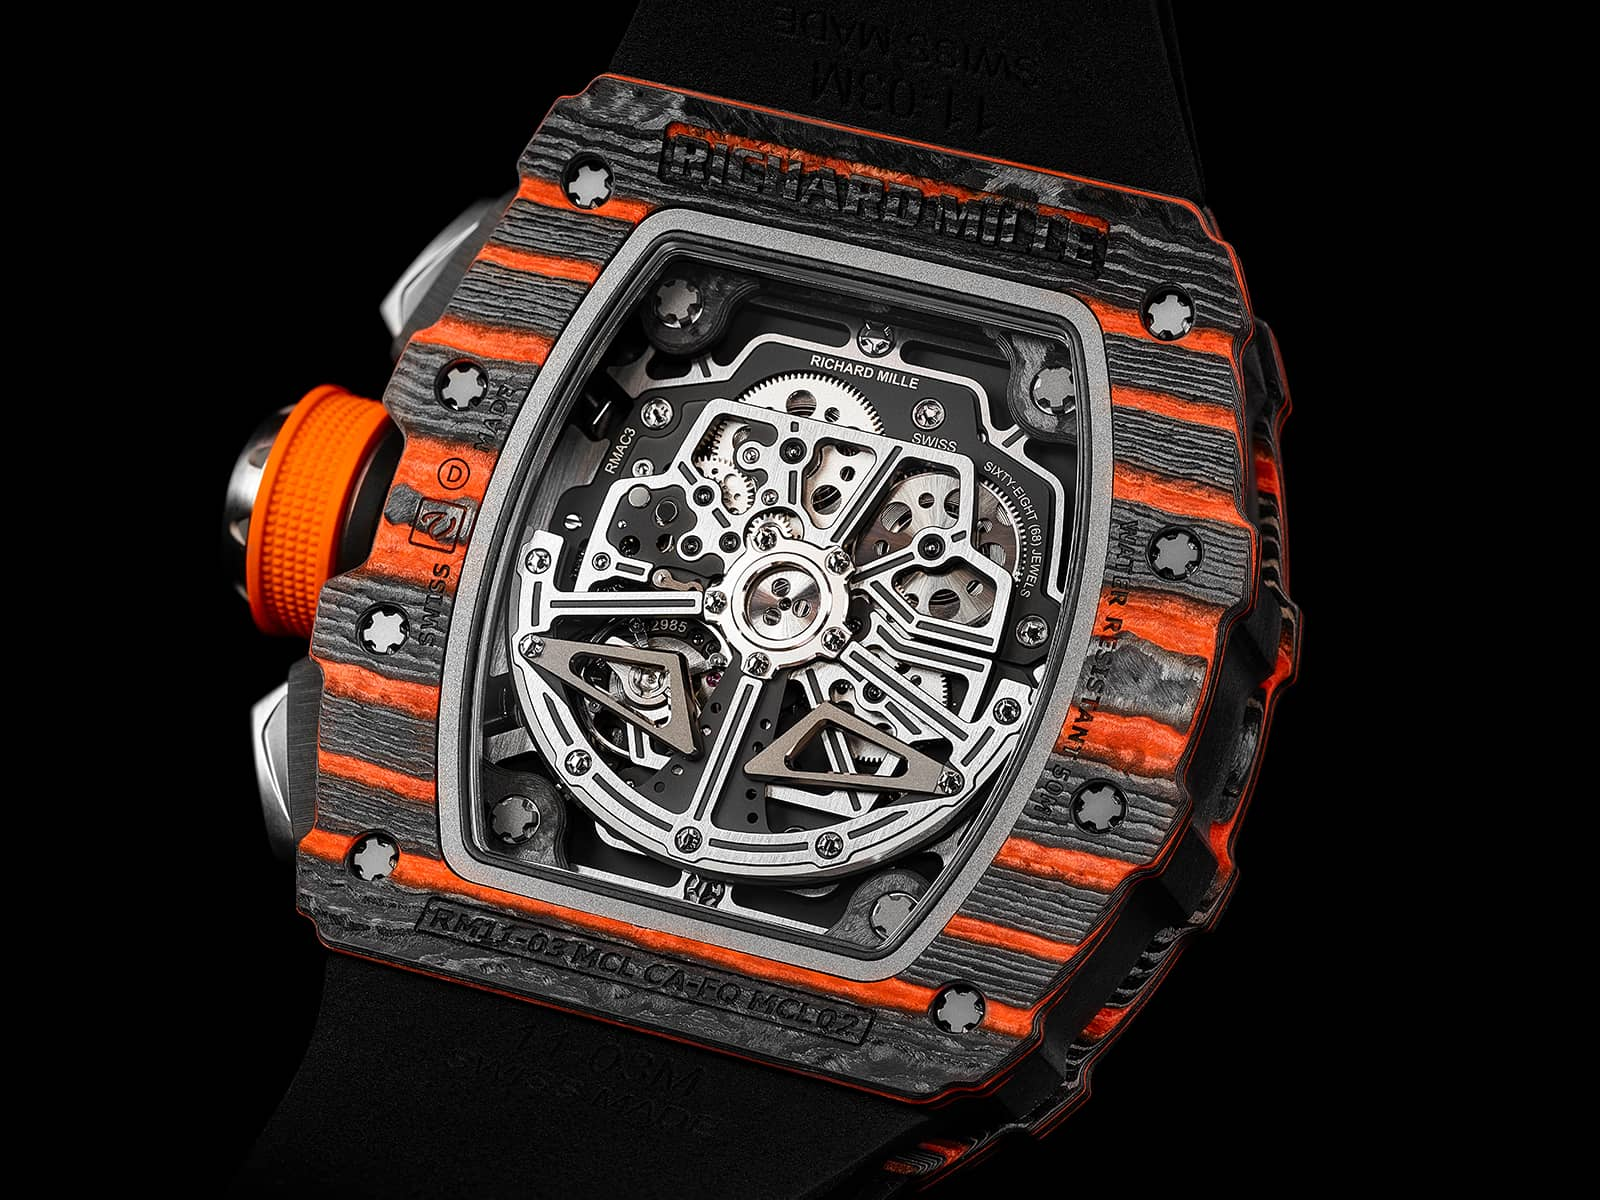 richard-mille-rm-11-03-mcLaren-automatic-flyback-chronograph-11-.jpg